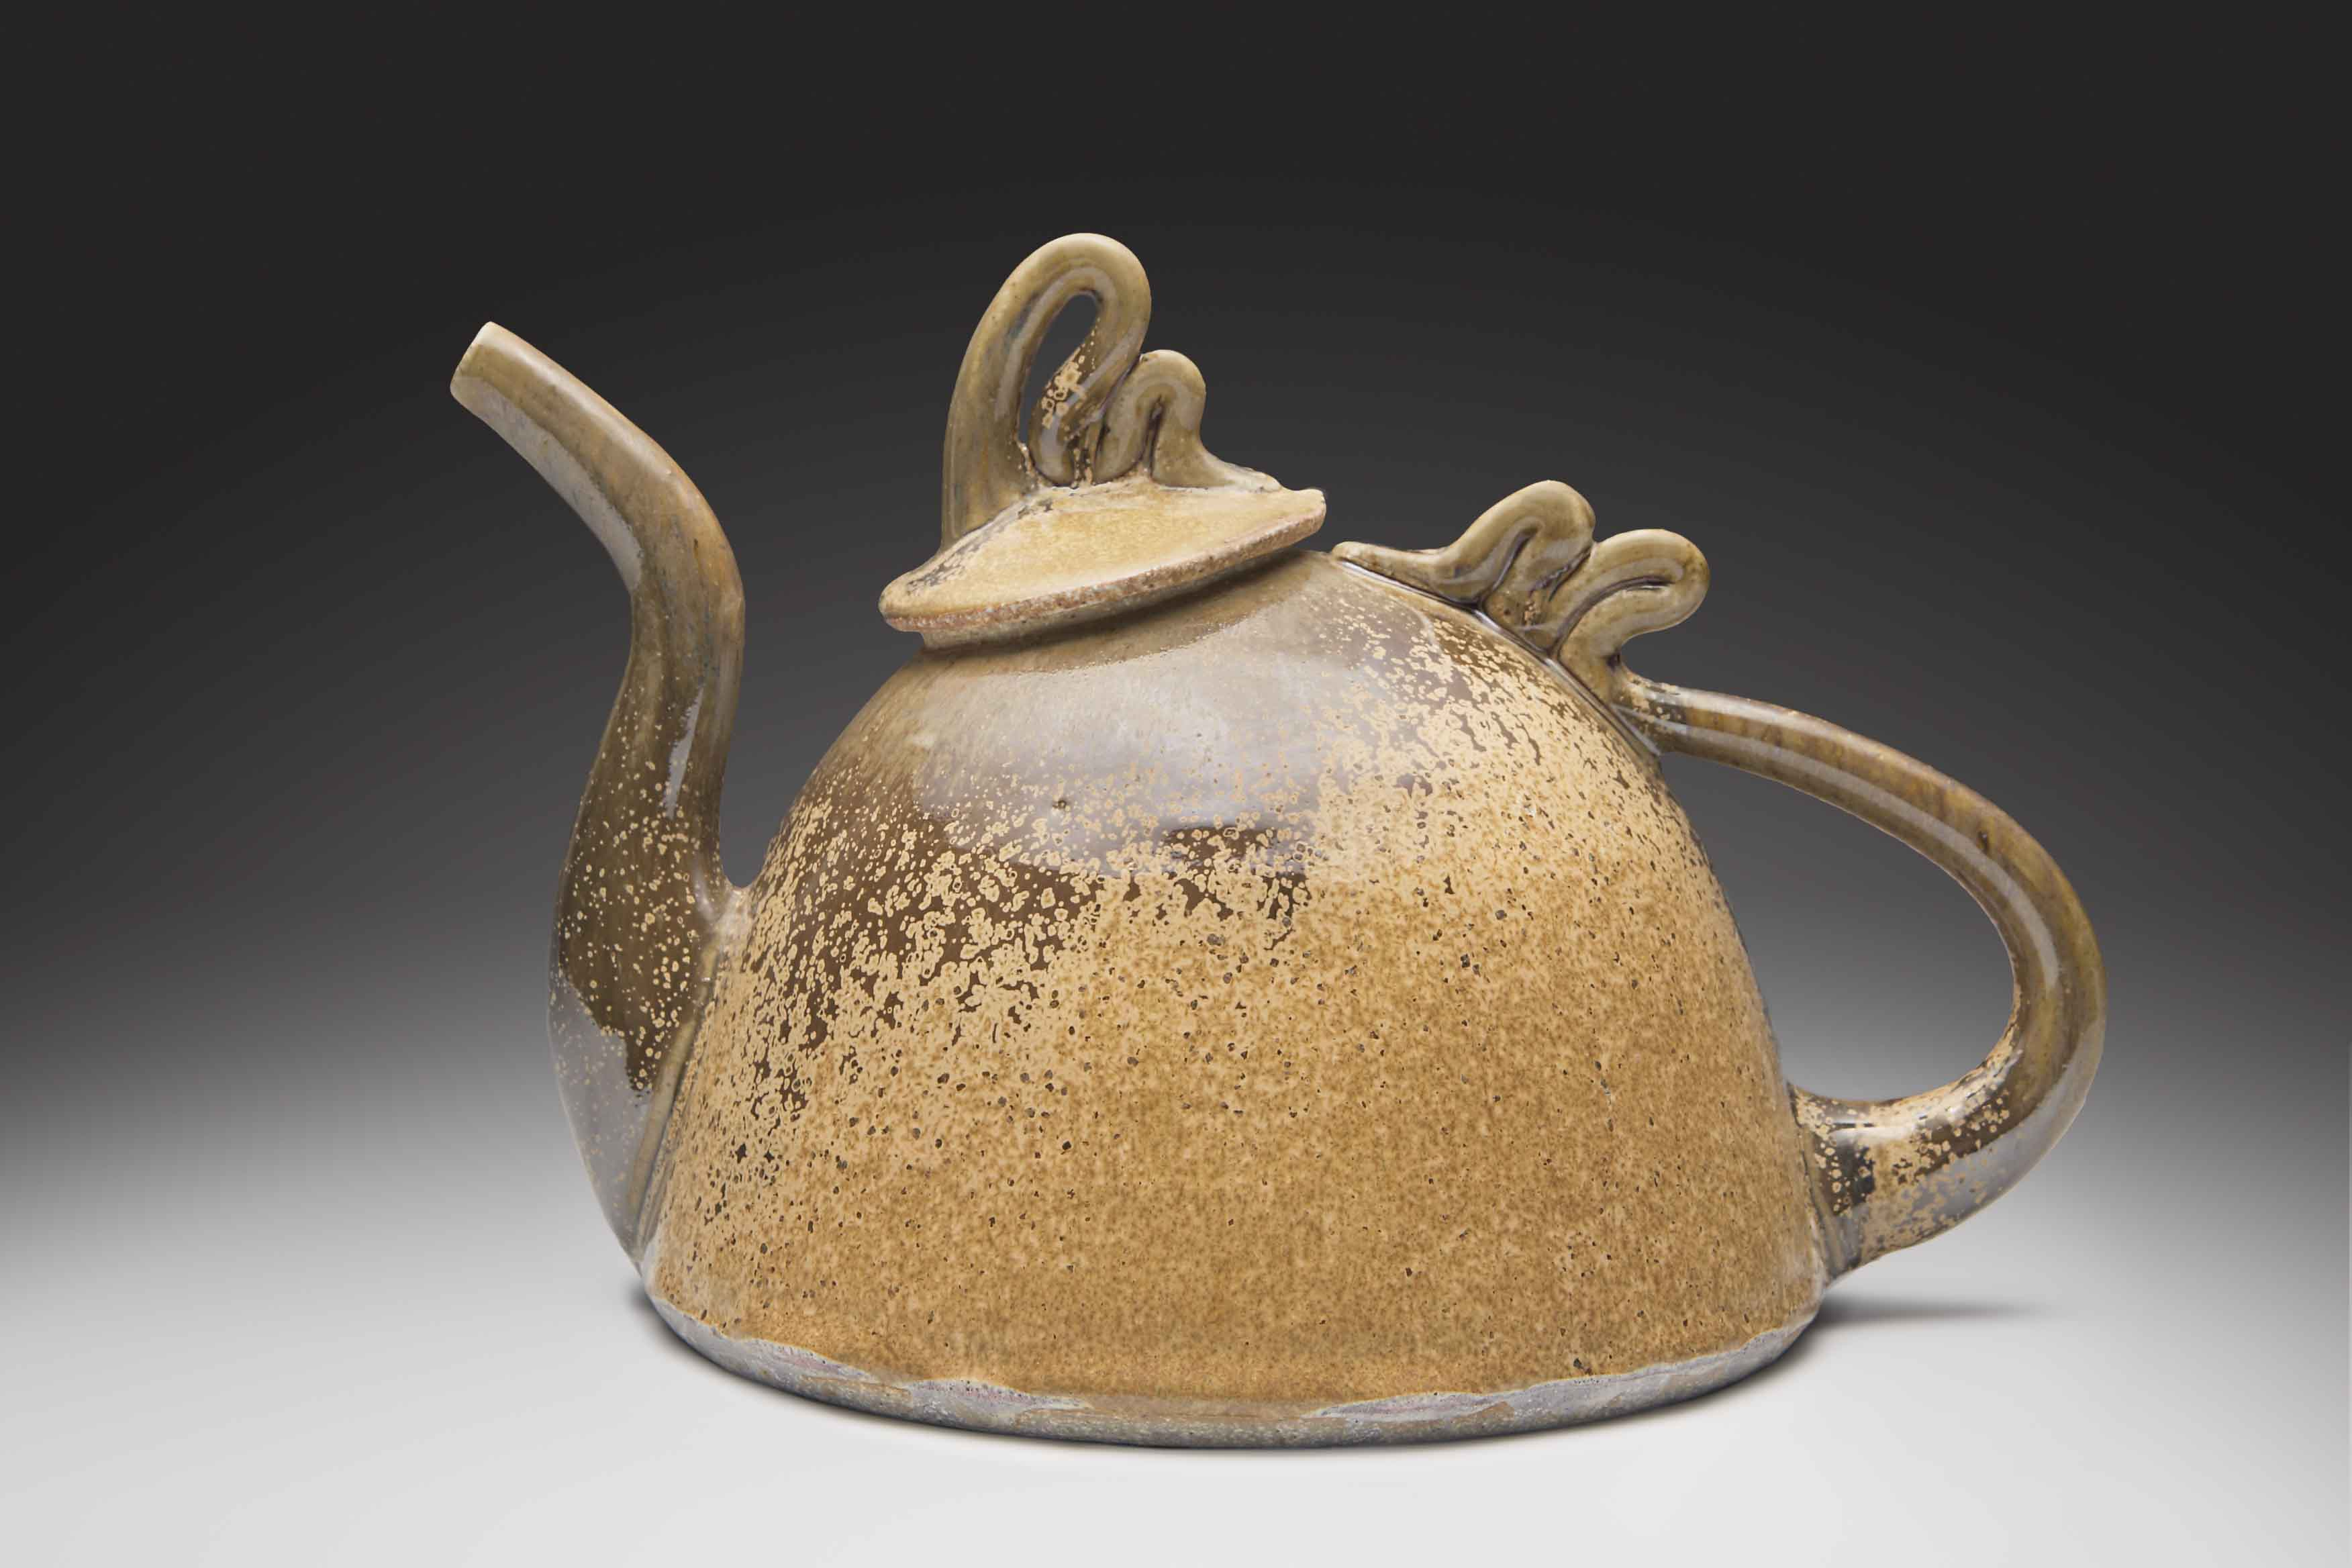 teapot-low-rez